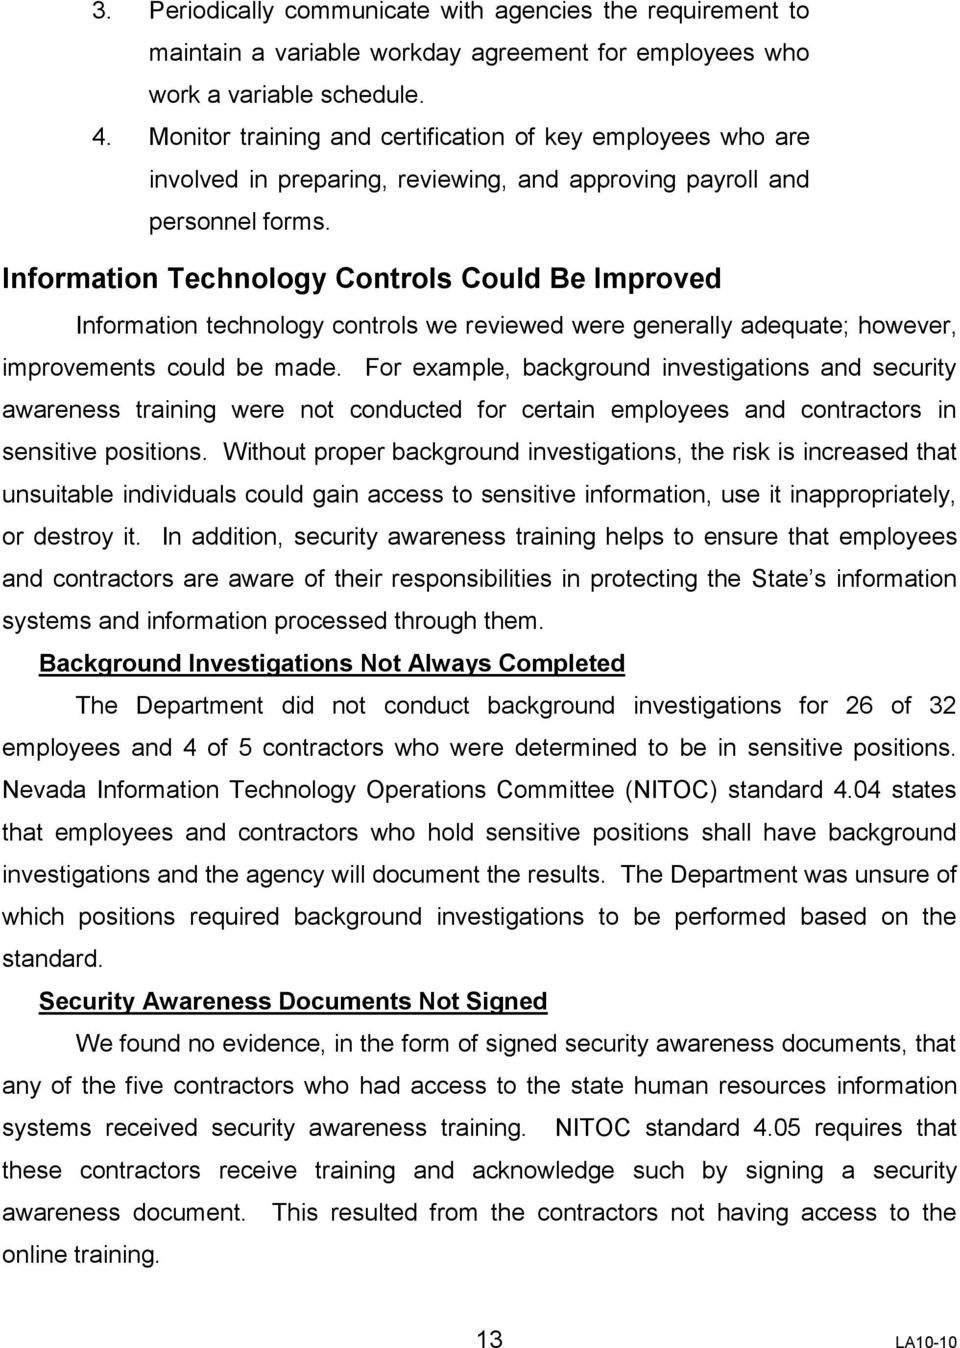 Information Technology Controls Could Be Improved Information technology controls we reviewed were generally adequate; however, improvements could be made.